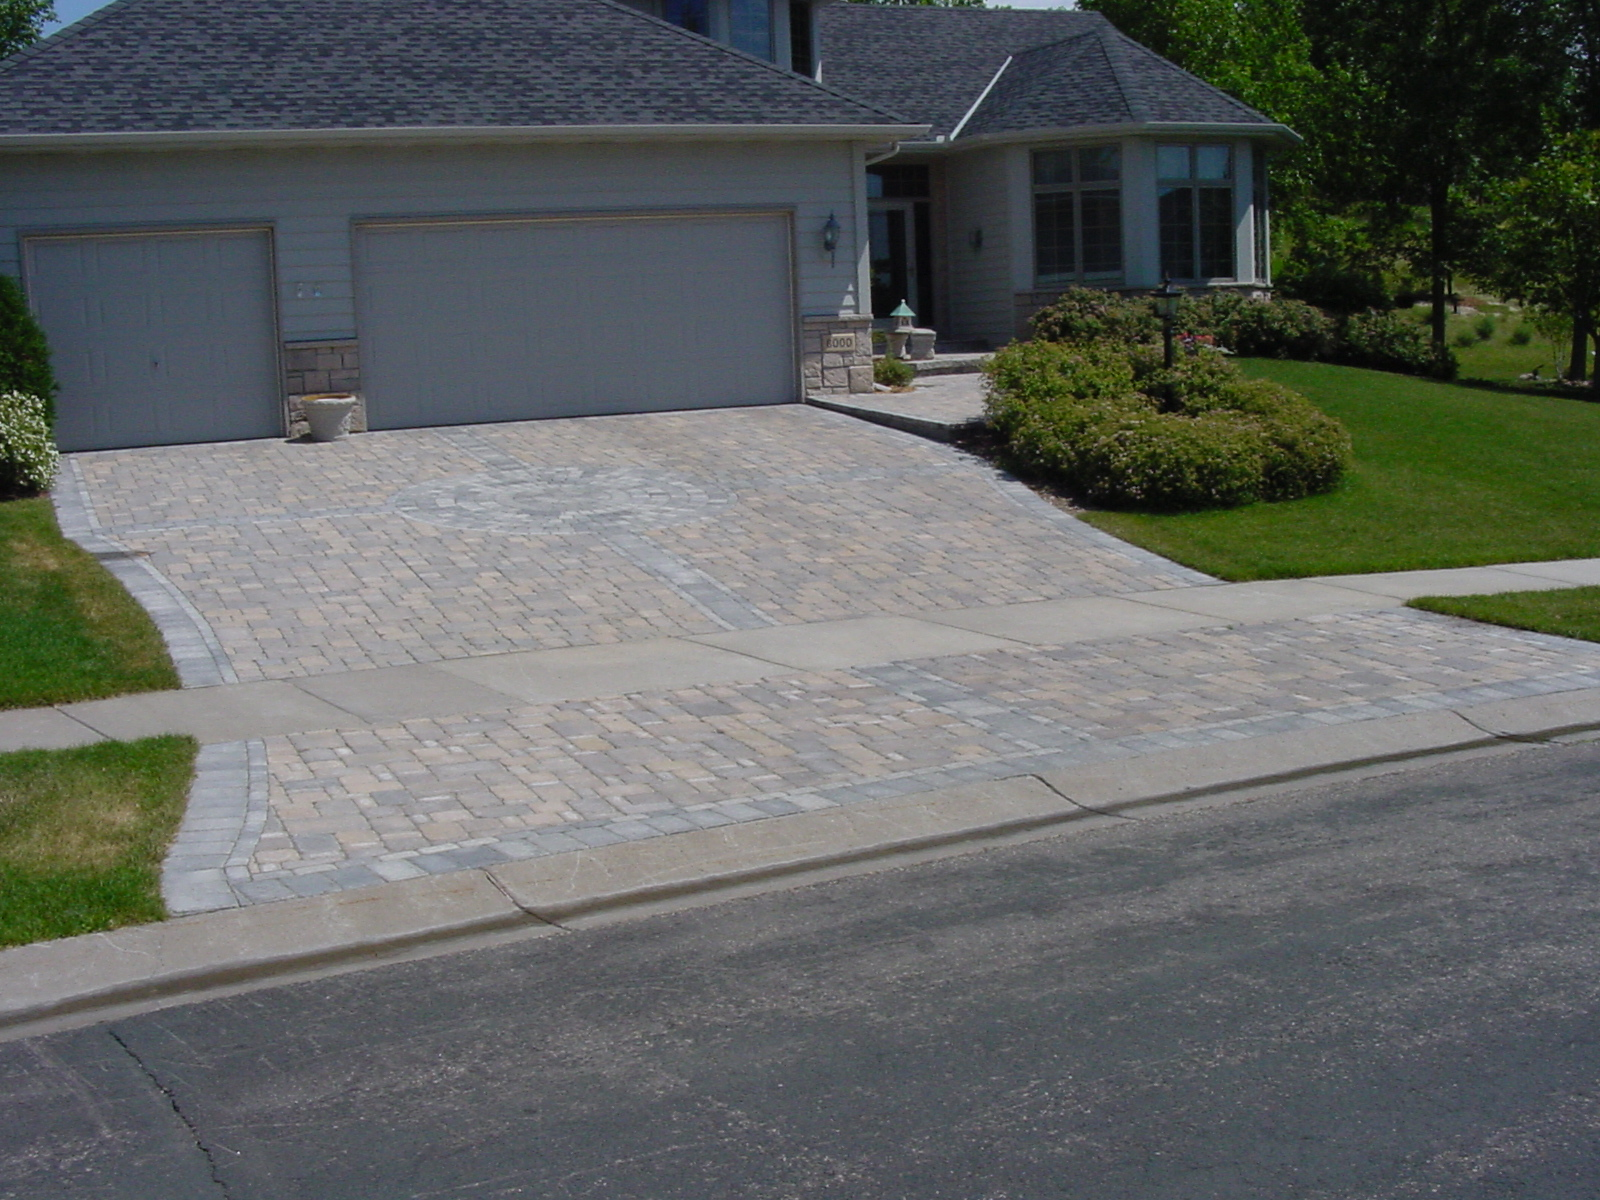 Benefits and drawbacks of concrete driveways for Cement driveway ideas